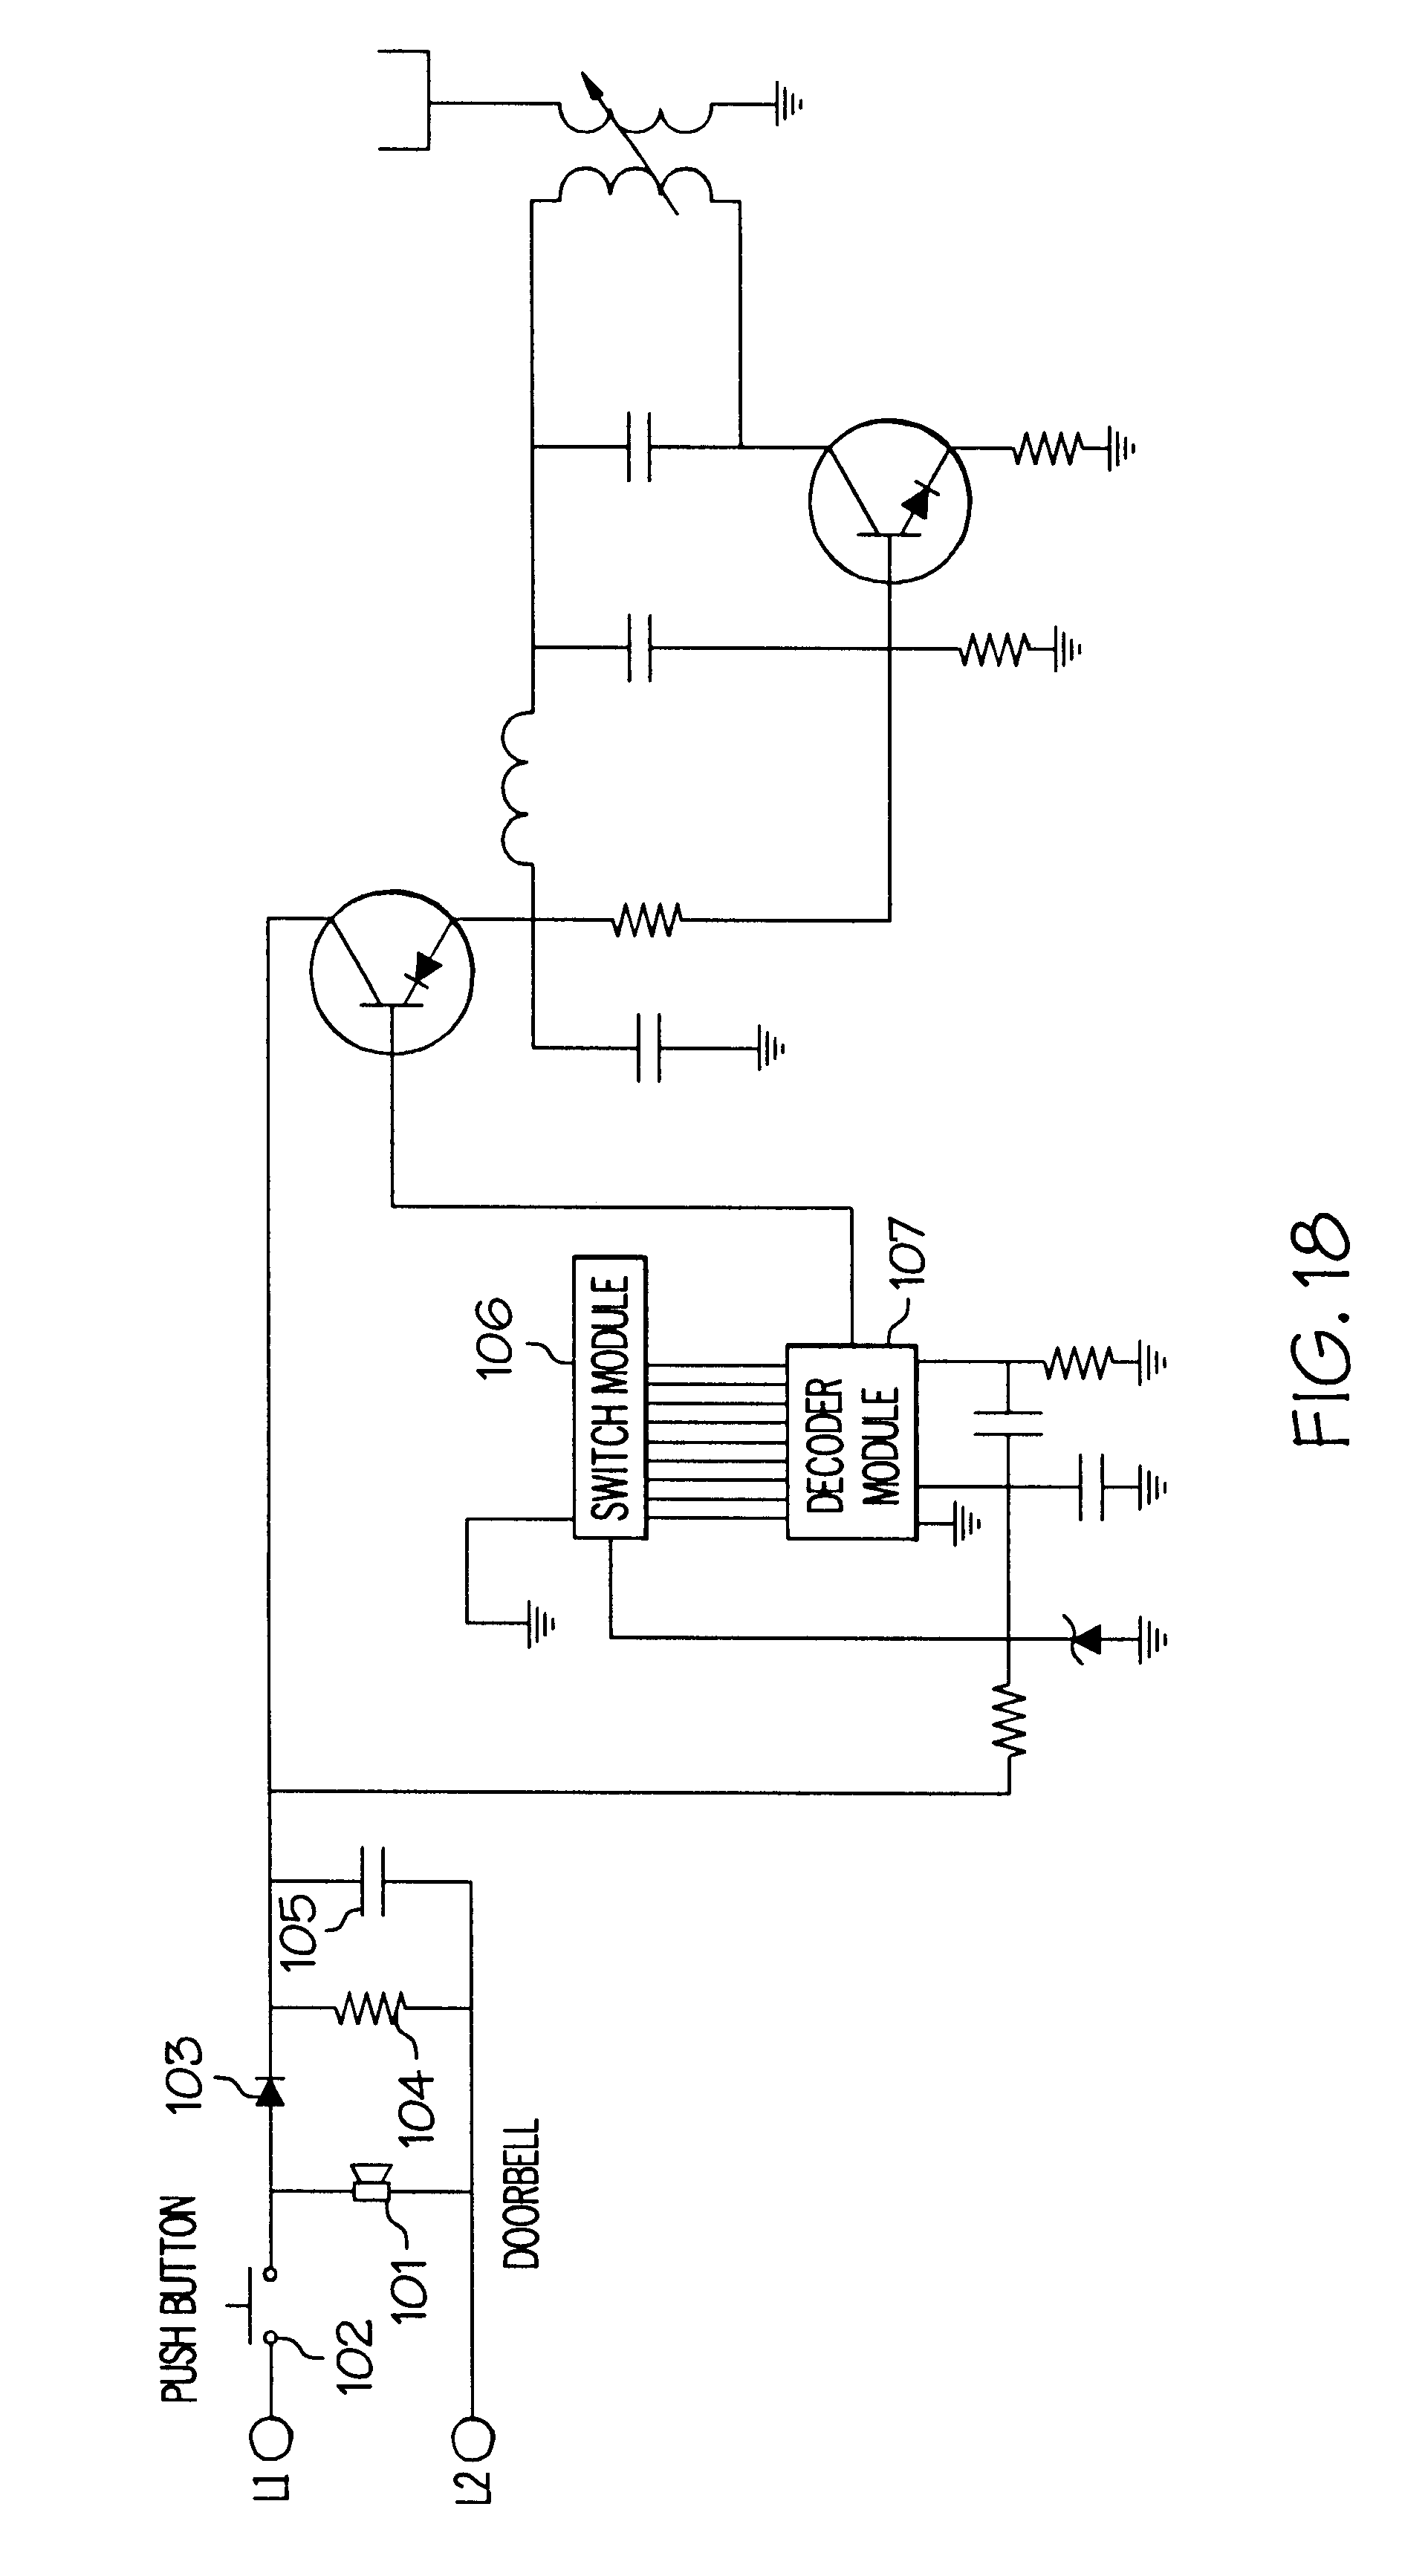 Leviton T5225 Wiring Diagram Modern Design Of Is There A Showing All The Wires Coming To 5226 5241 Switches Veriblespeed